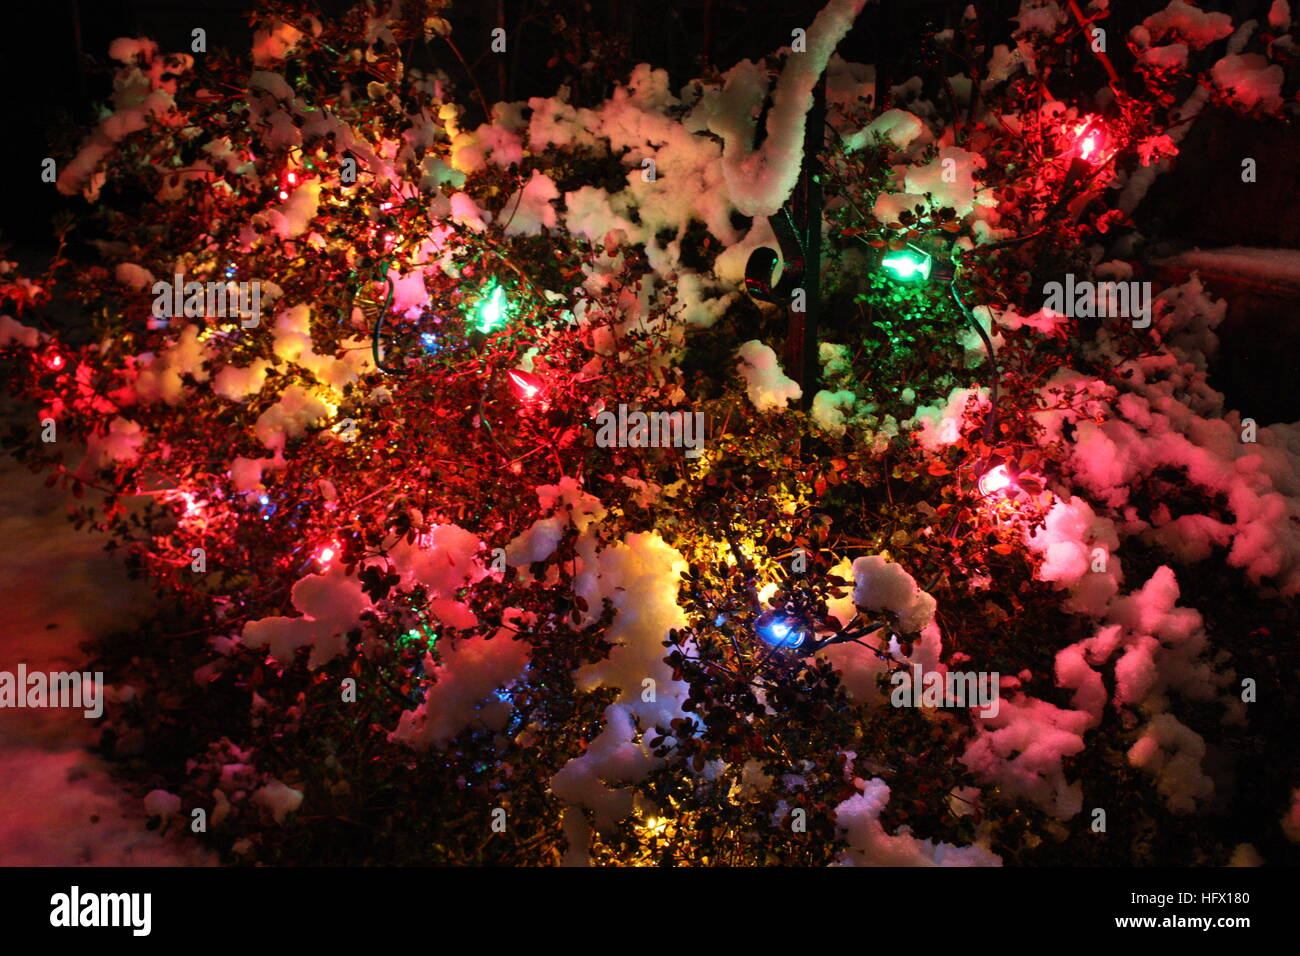 Vancouver Christmas Snow.Christmas Lights On A Bush In The Snow Vancouver British